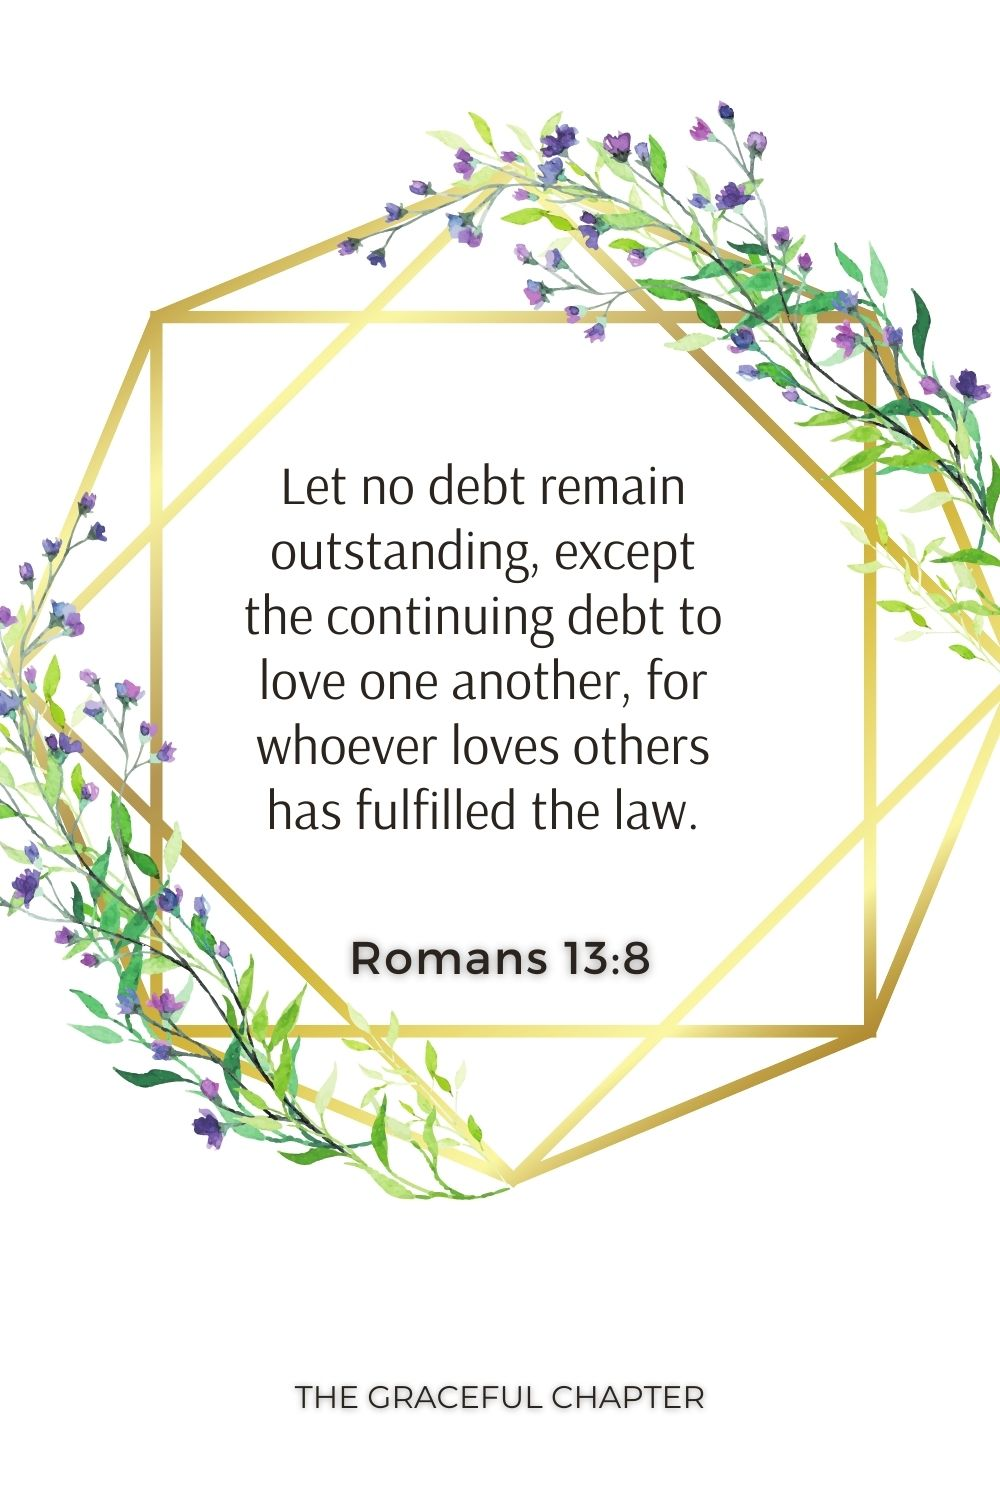 Let no debt remain outstanding, except the continuing debt to love one another, for whoever loves others has fulfilled the law. Romans 13:8